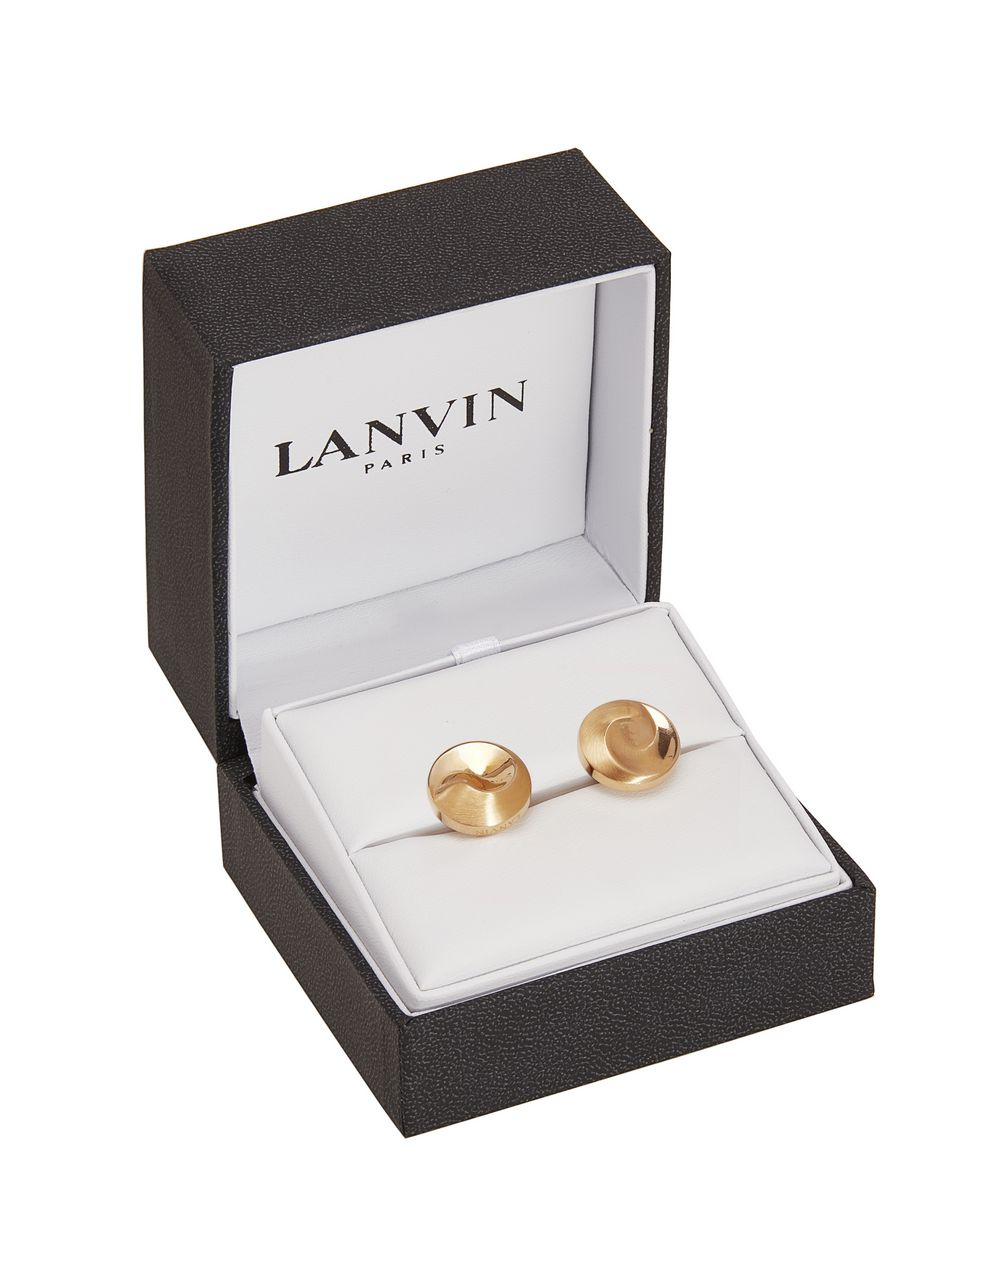 Gold-plated metal cuff links - Lanvin